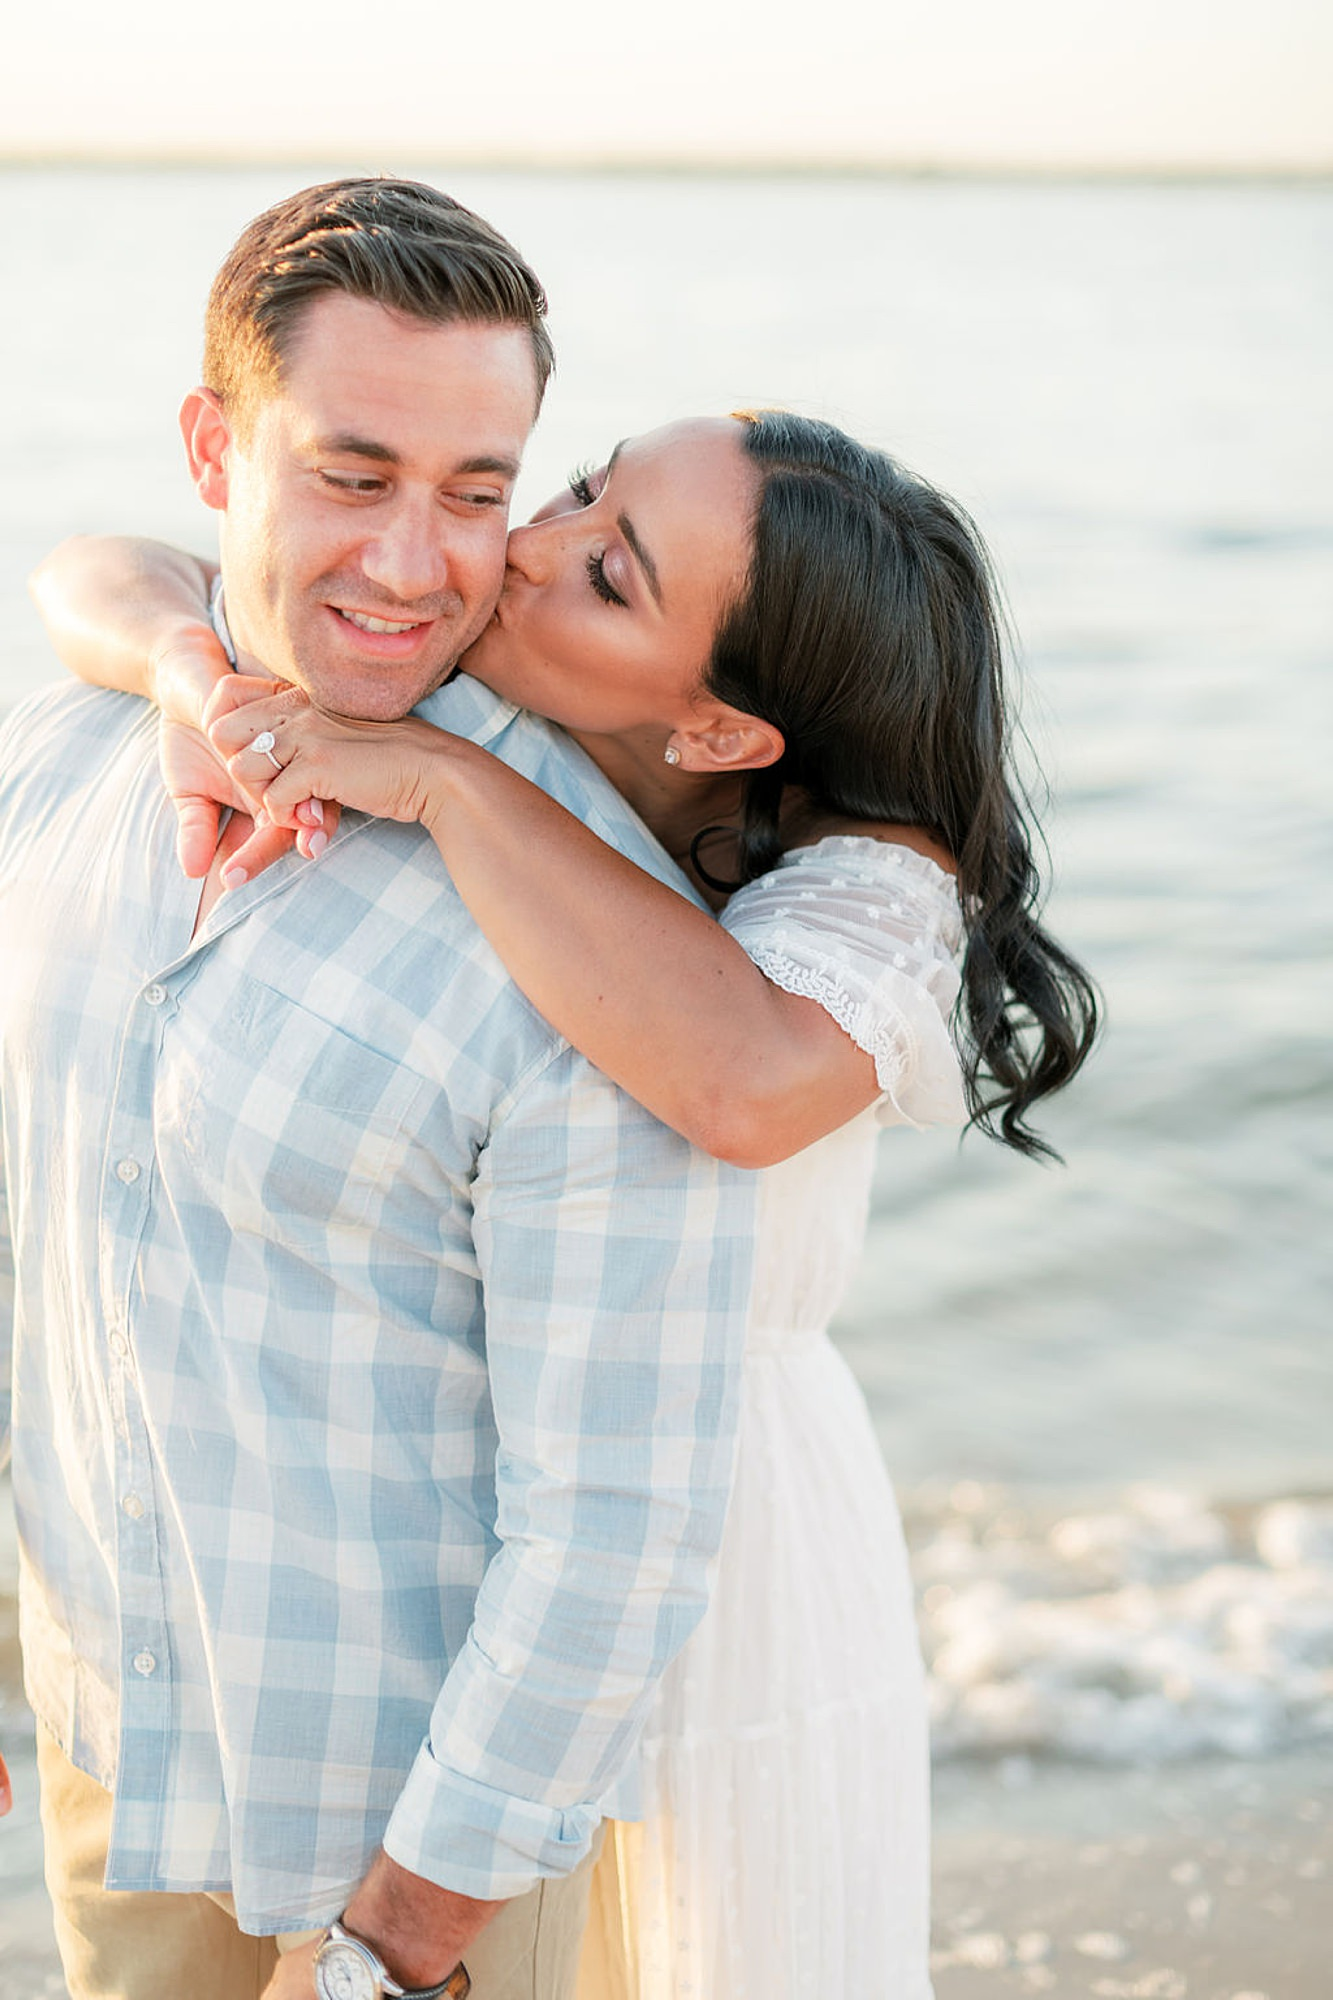 Airy and Bright Engagement Photography in Ocean City NJ by Magdalena Studios 0030